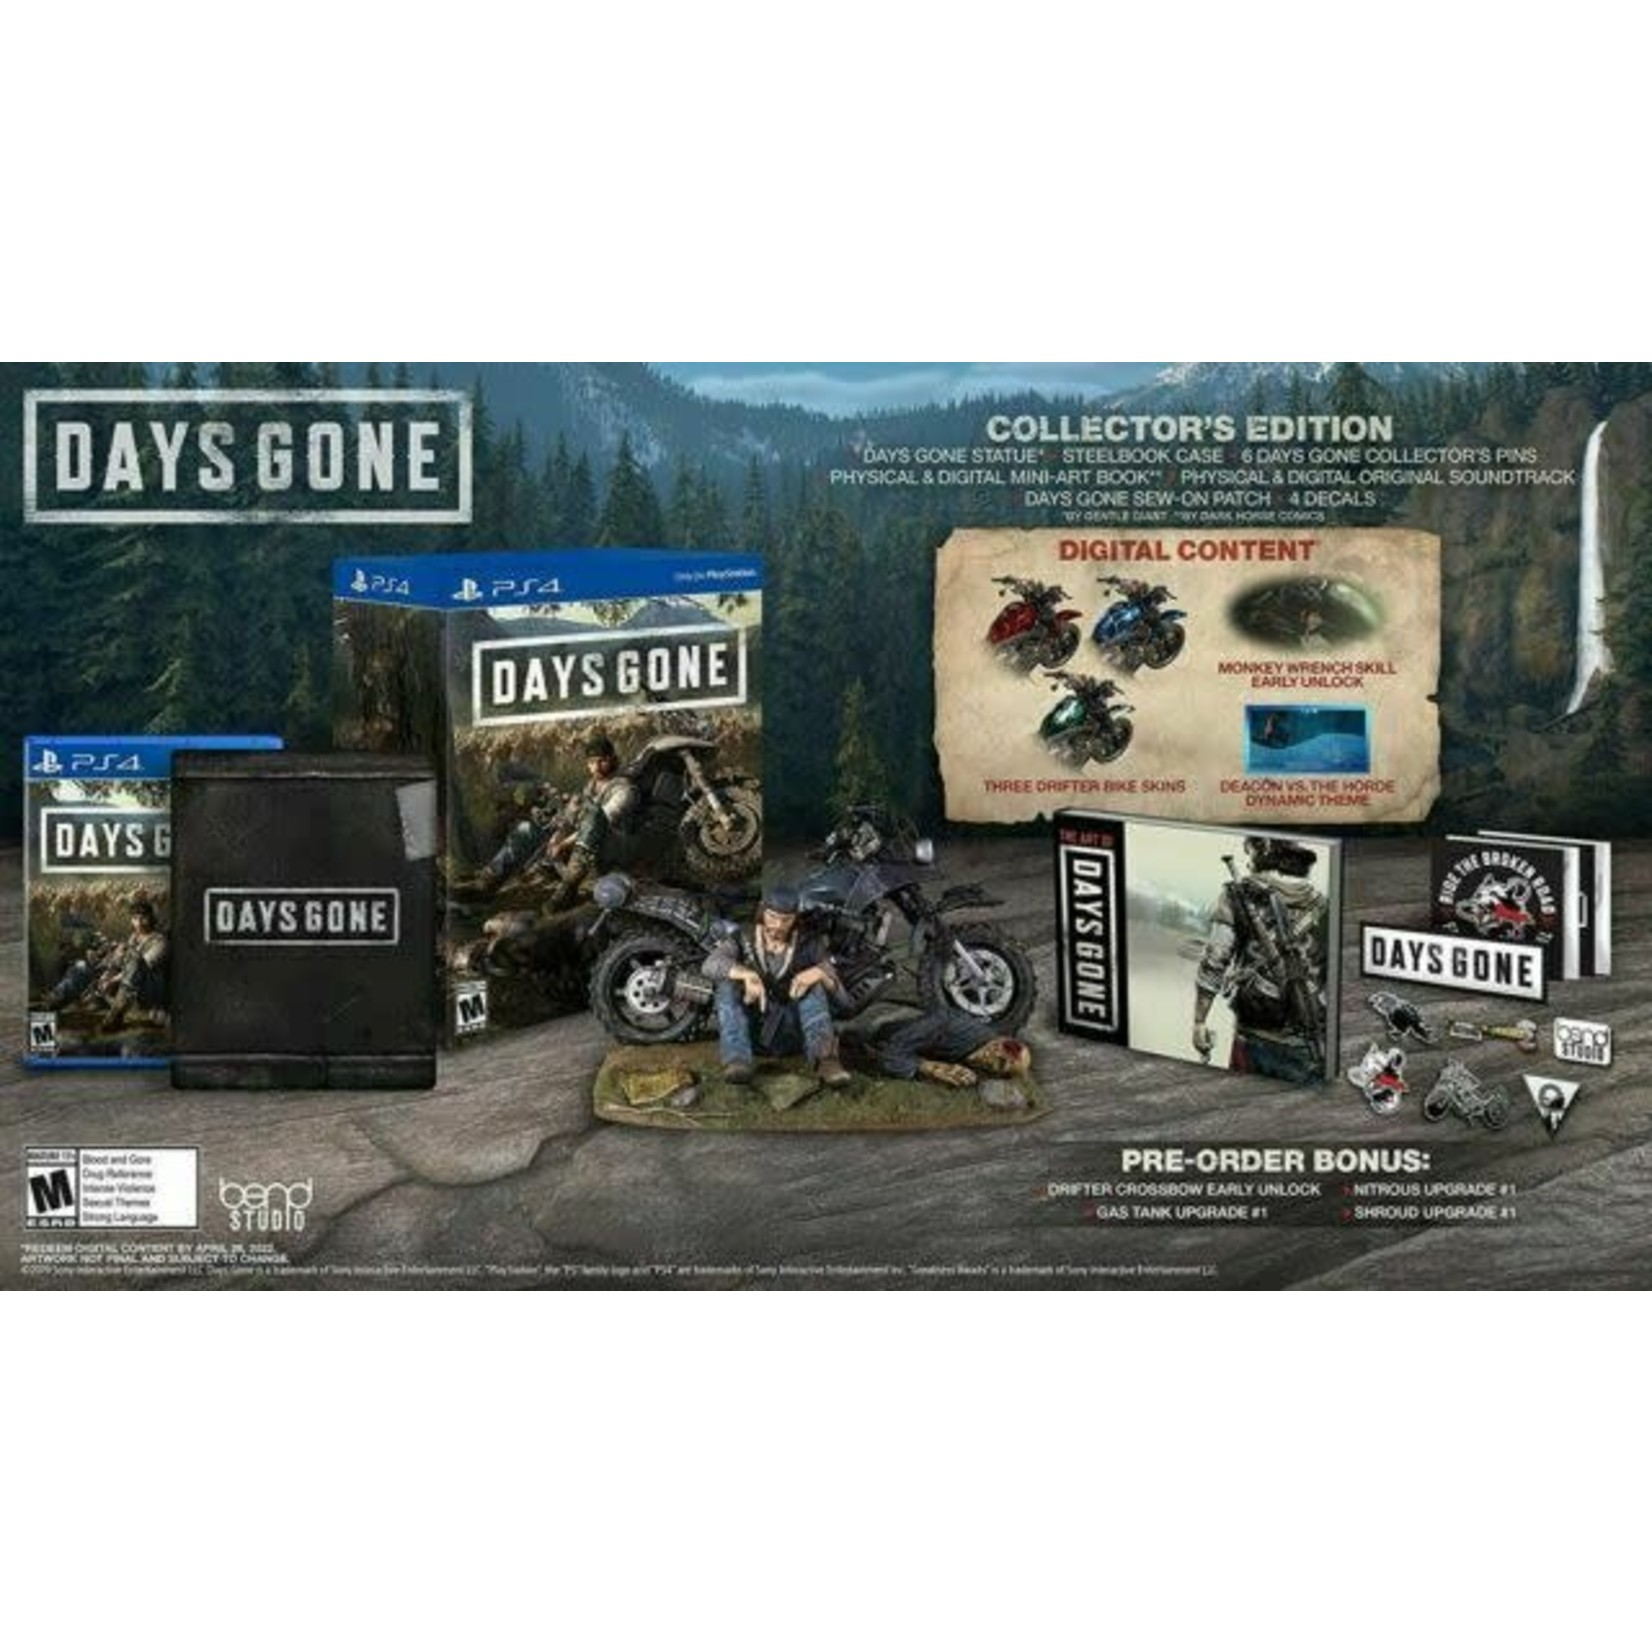 PS4-Days Gone Collector's Edition